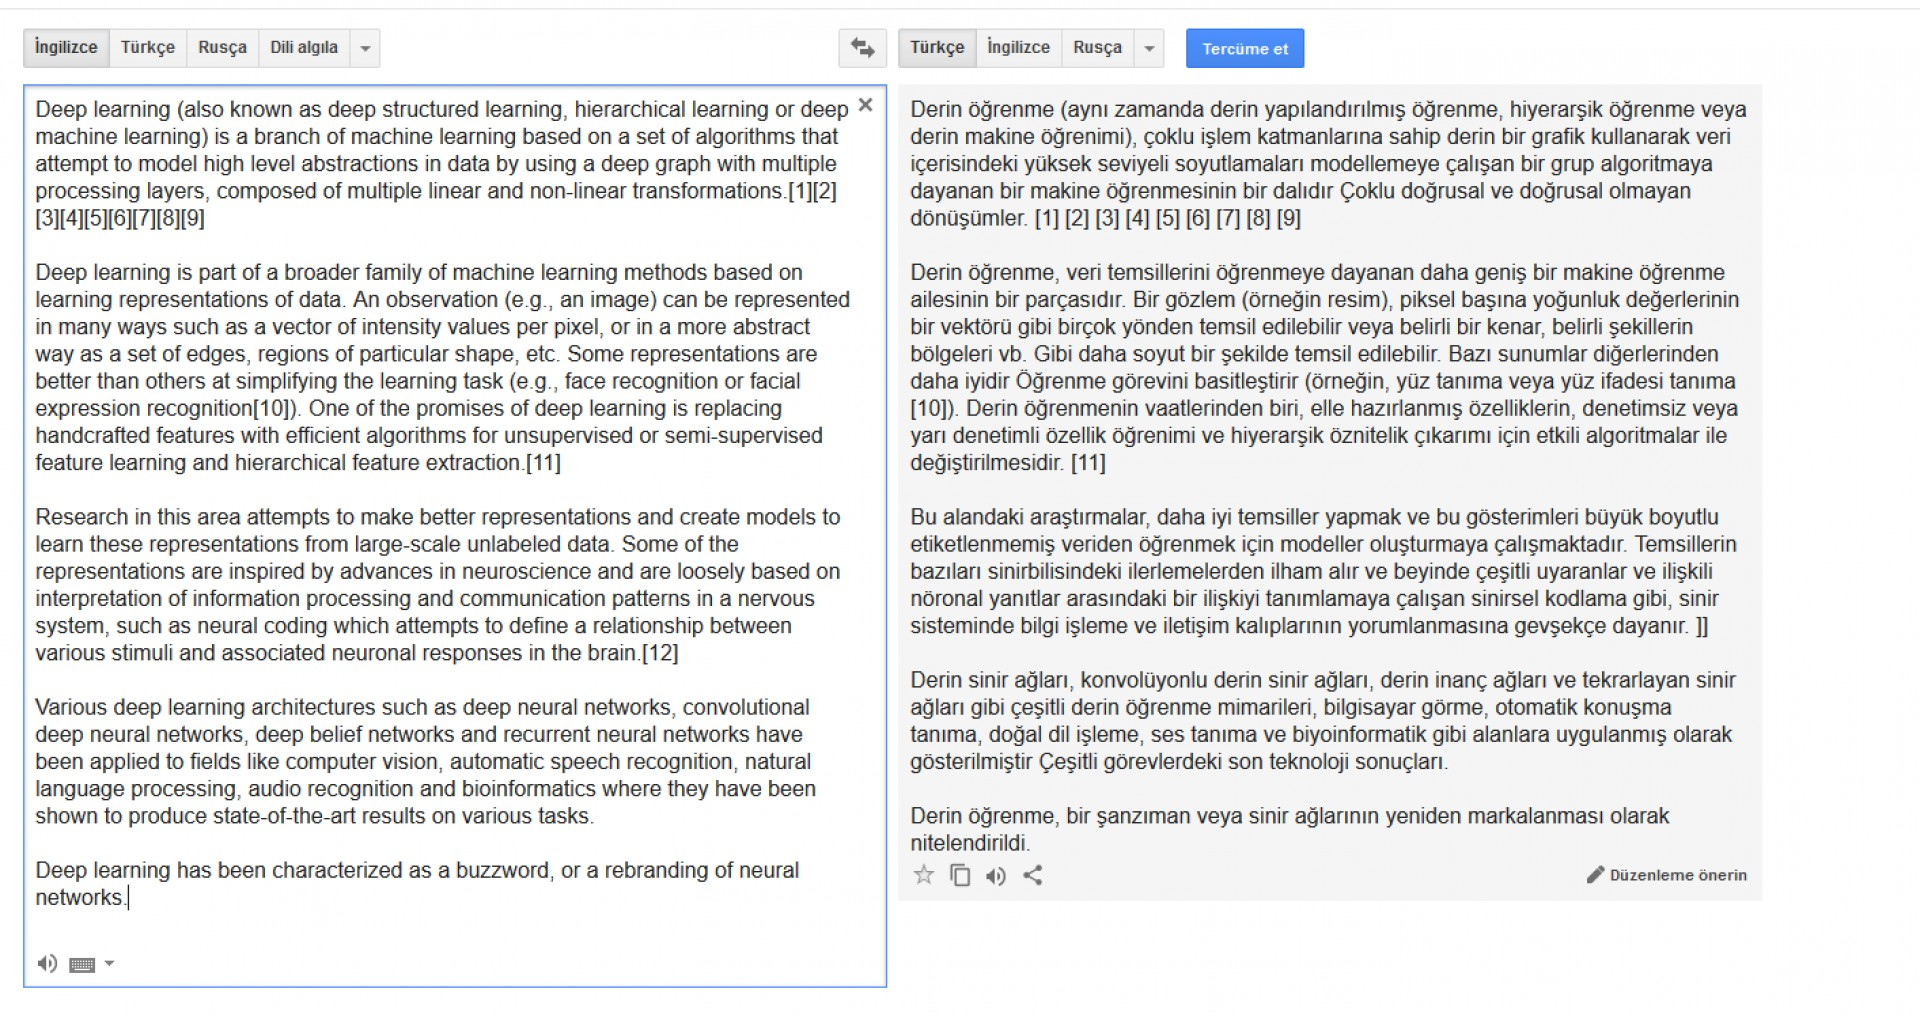 019 Googletranslate Emreciftcinet Google Translate Researchs Fascinating Research Papers 1920